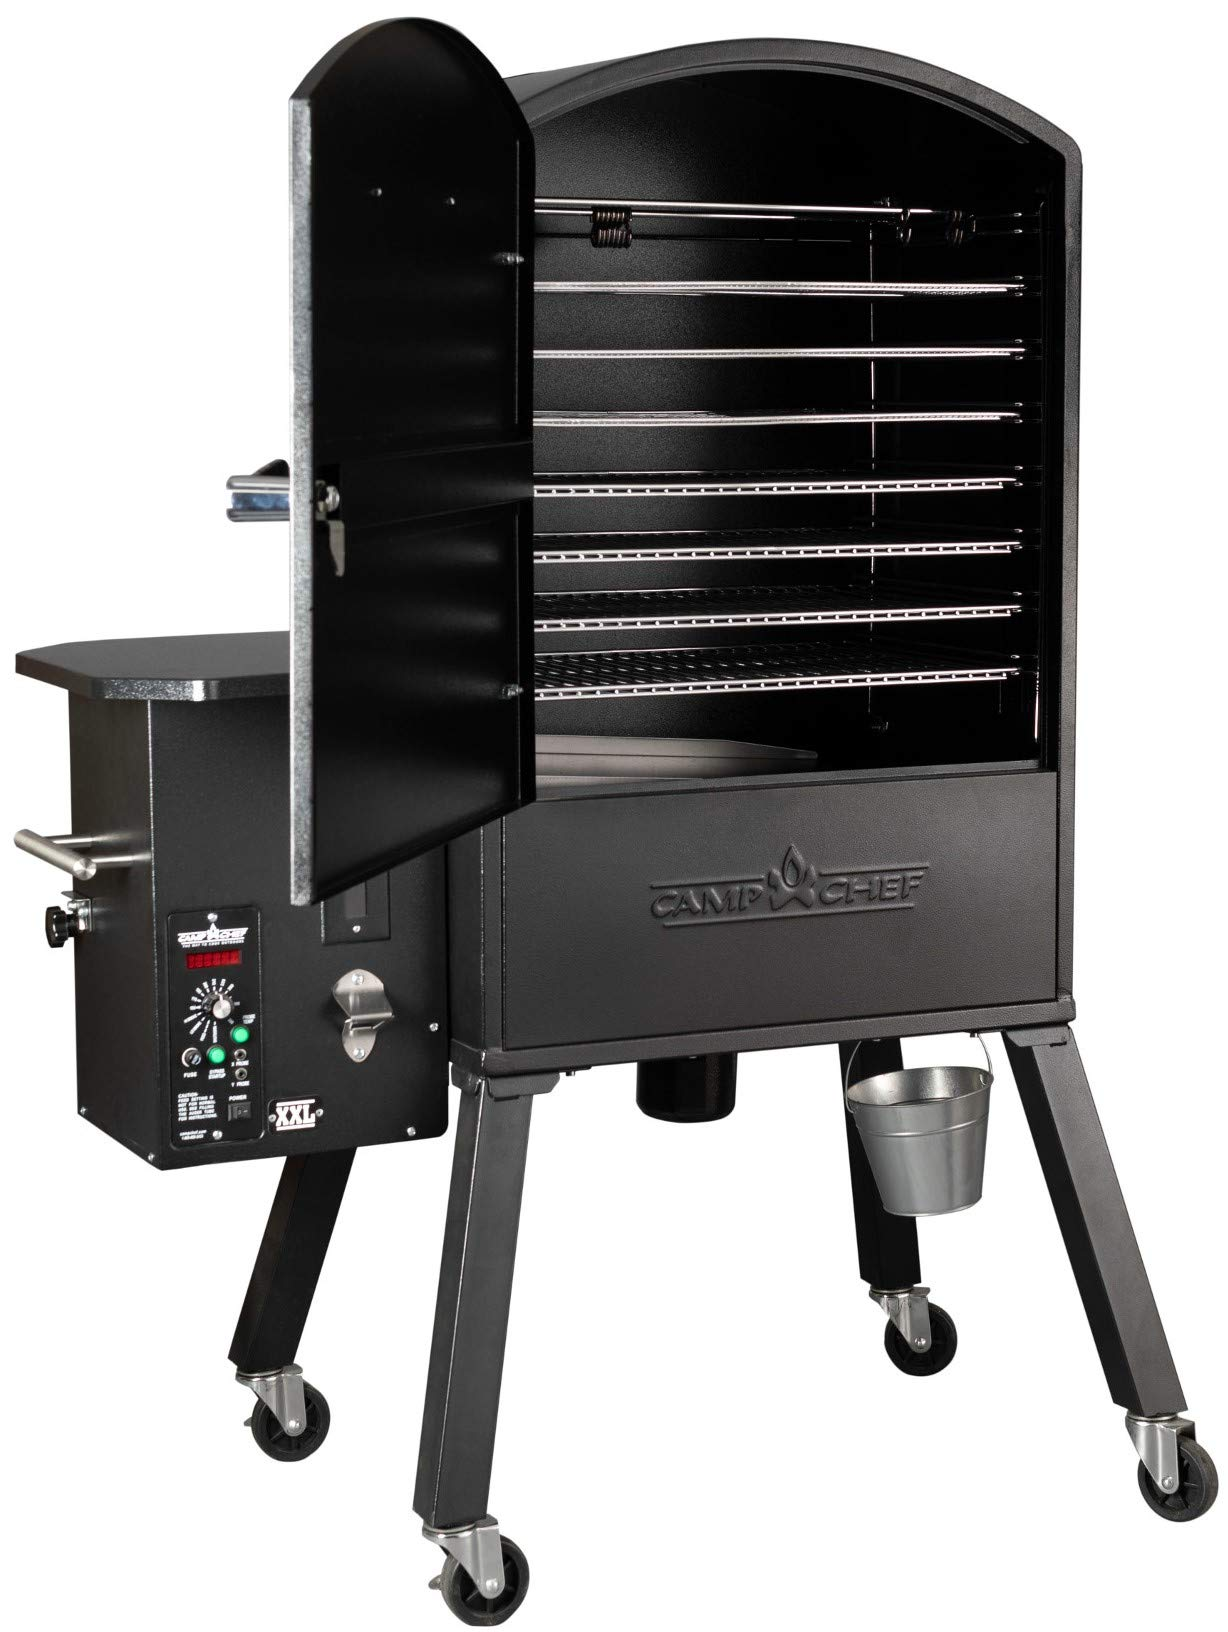 Camp Chef XXL Vertical Pellet Grill and Smoker (PGVXXL) - Smart Smoke Technology - Patented Ash Cleanout - Digital Display - Pellet Purge System